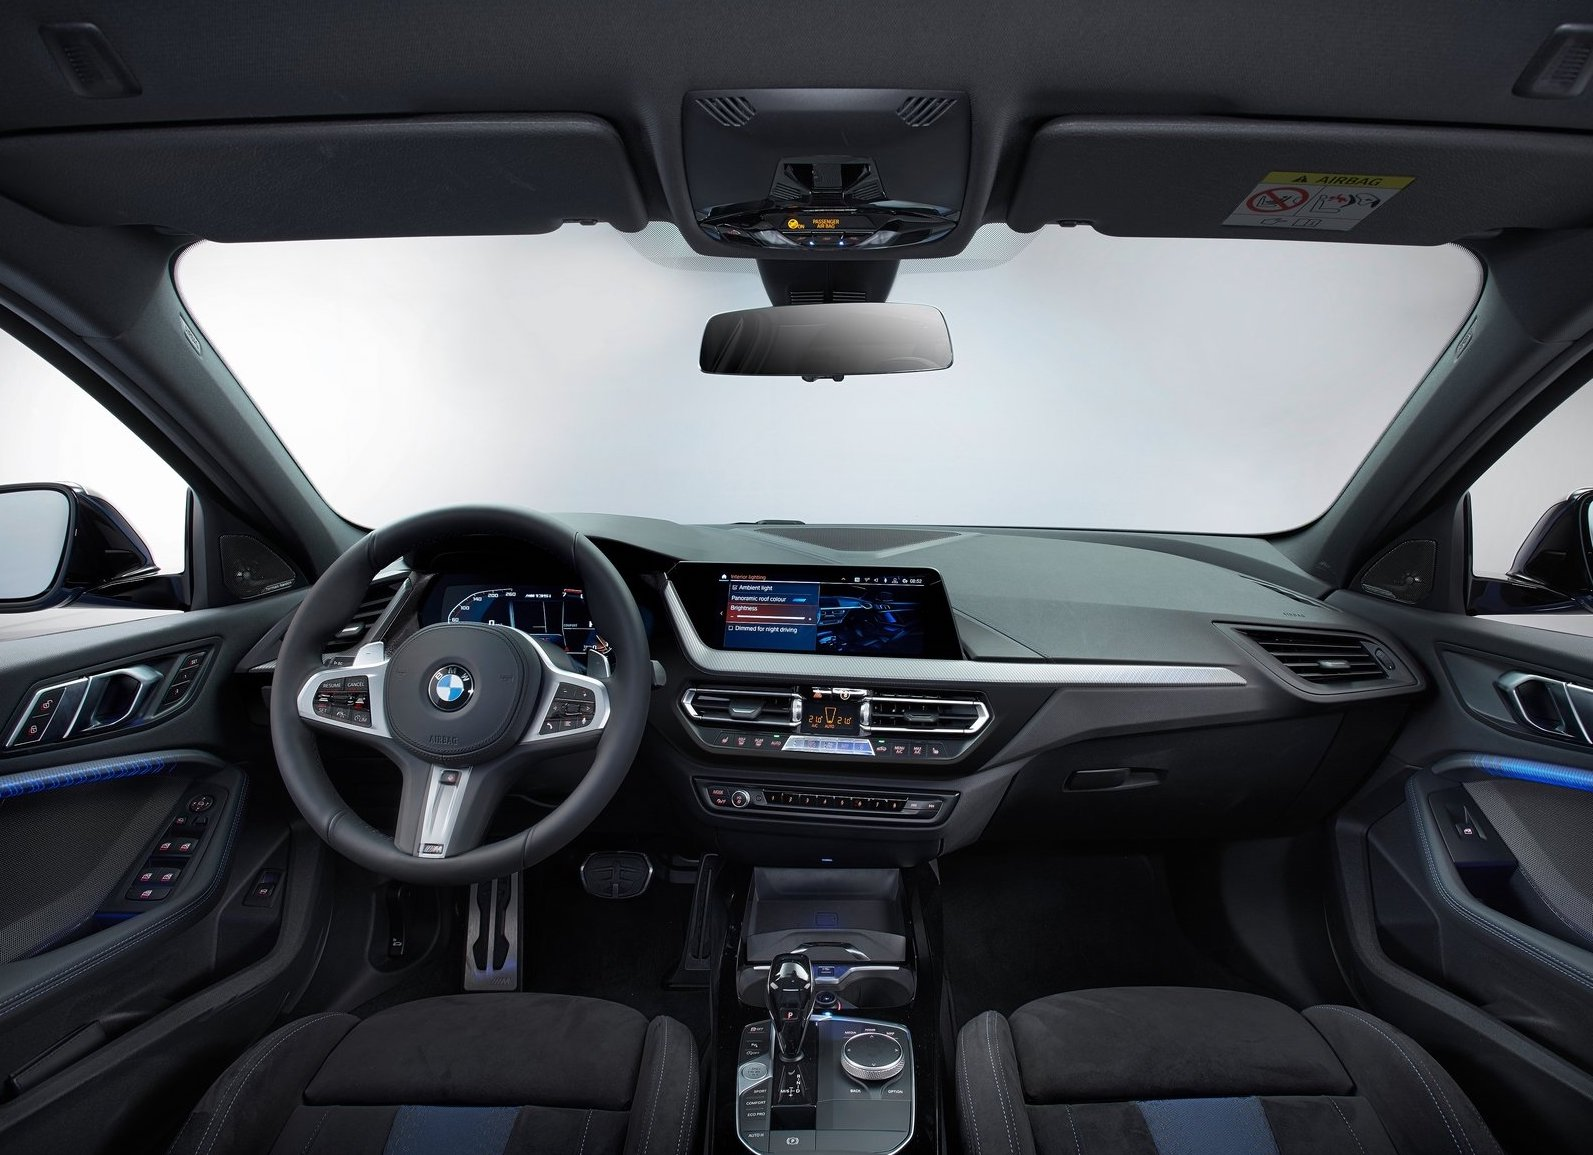 2020 Bmw 1 Series Revealed Topped By M135i Xdrive Performancedrive